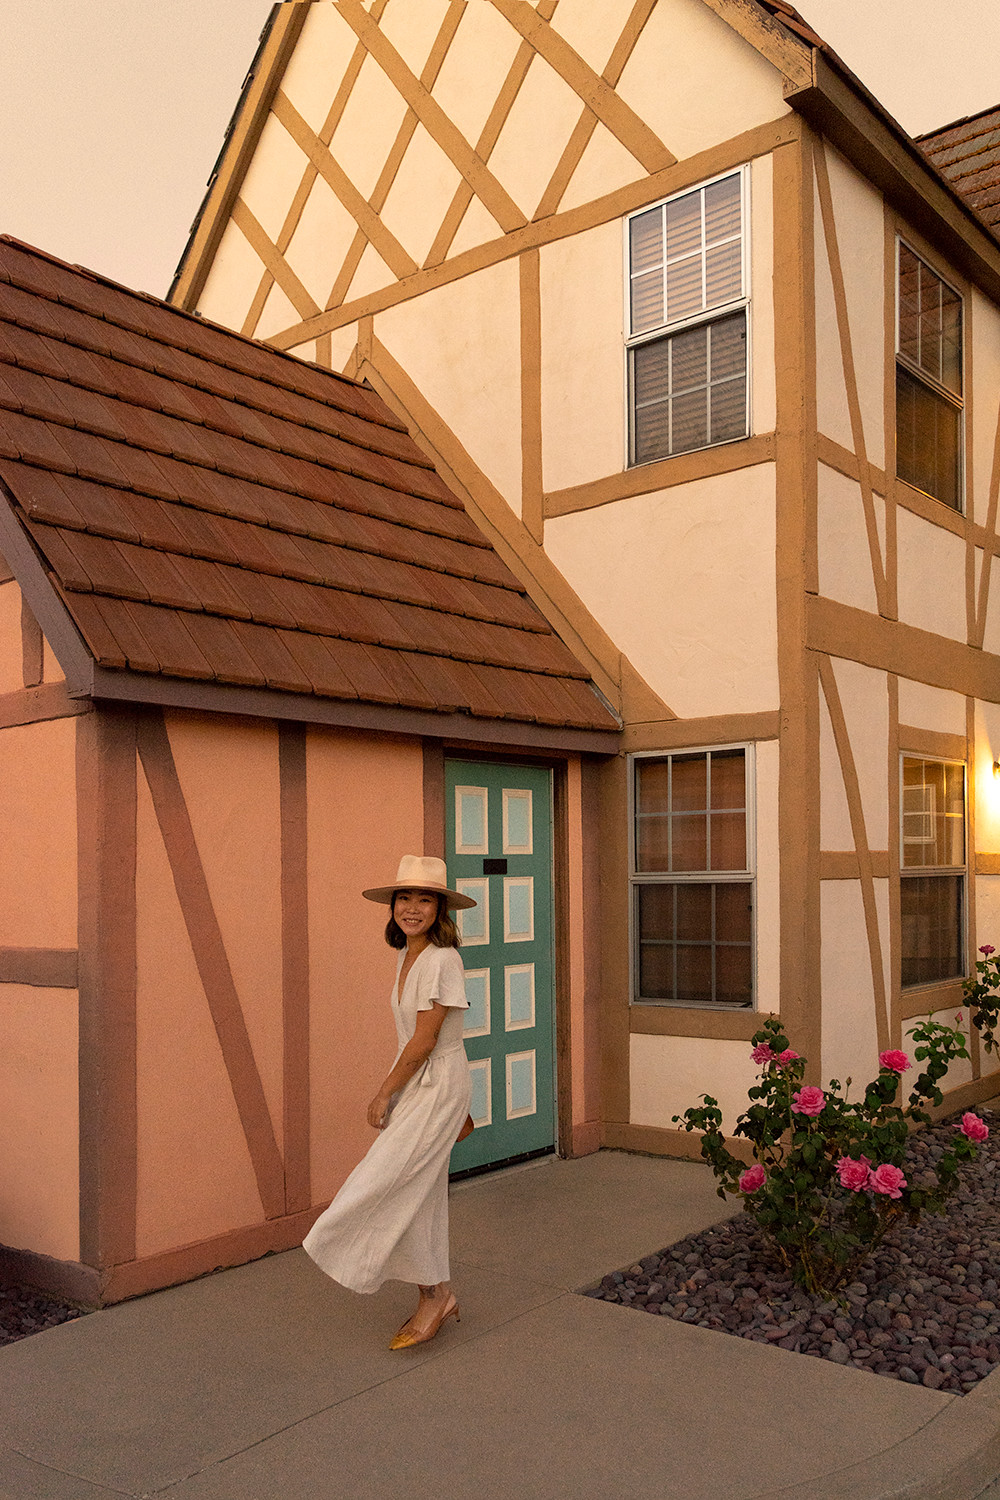 07solvang-california-roadtrip-travel-danish-architecture